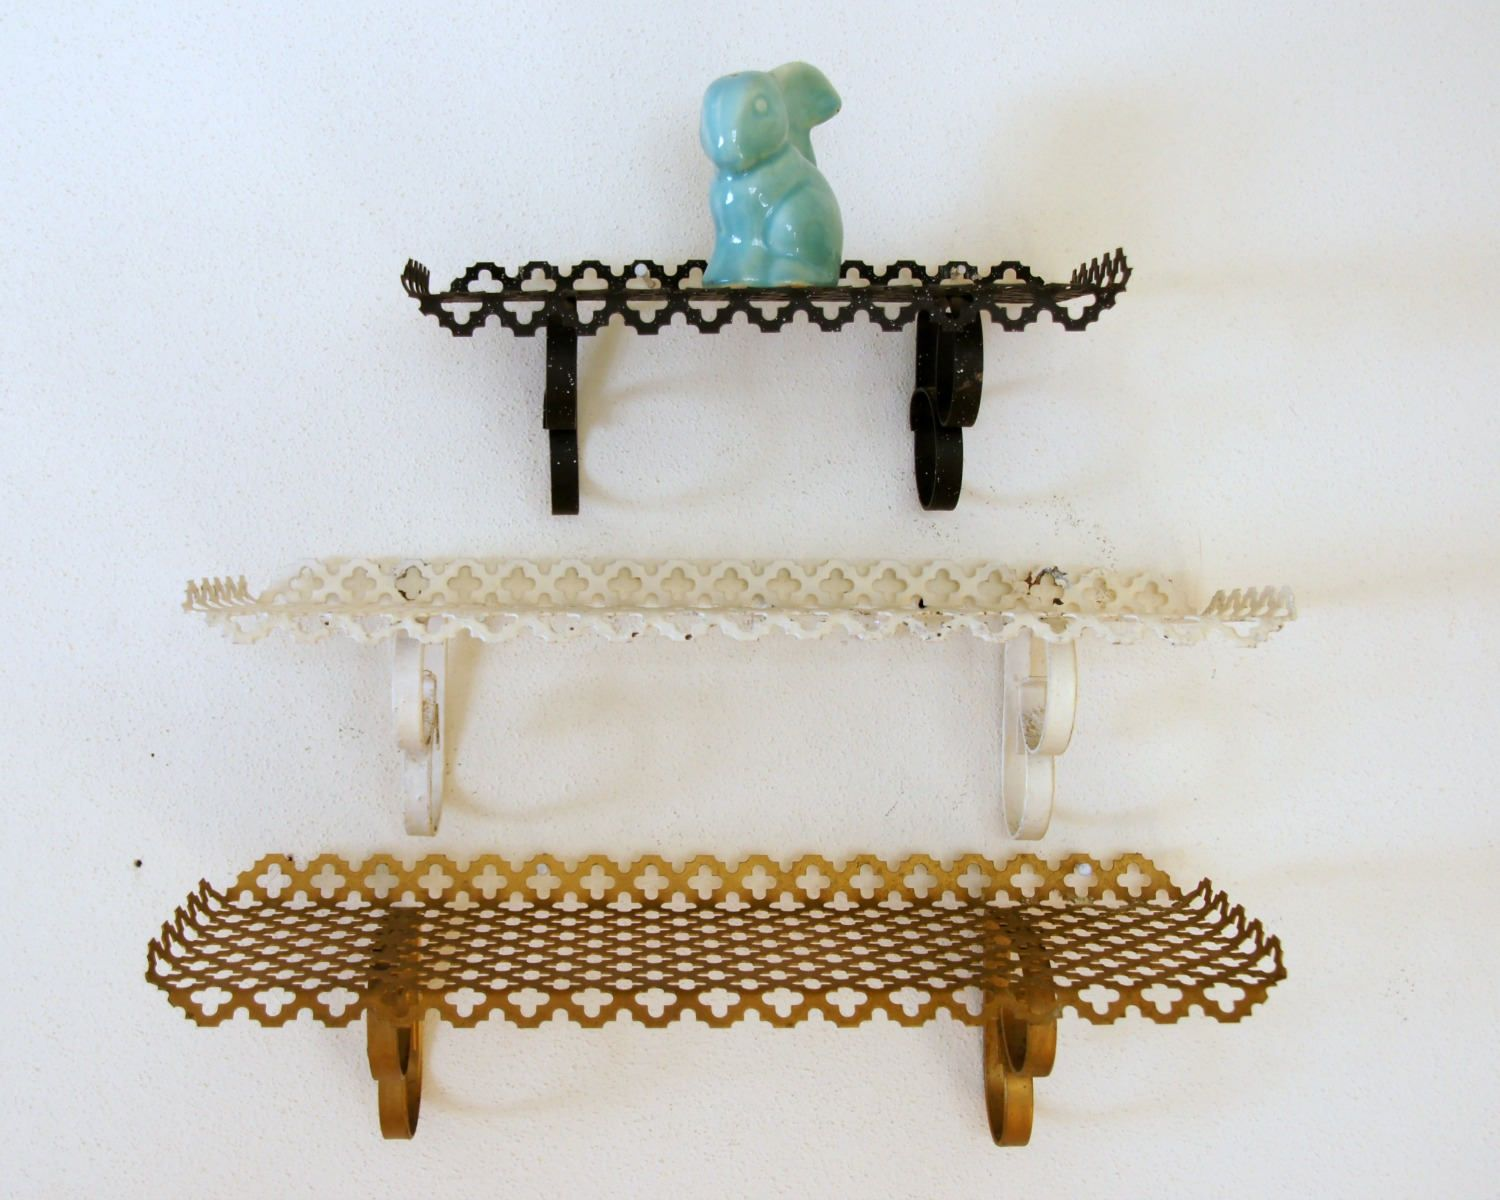 Vintage Wall Shelf Gold White Black Punched Metal